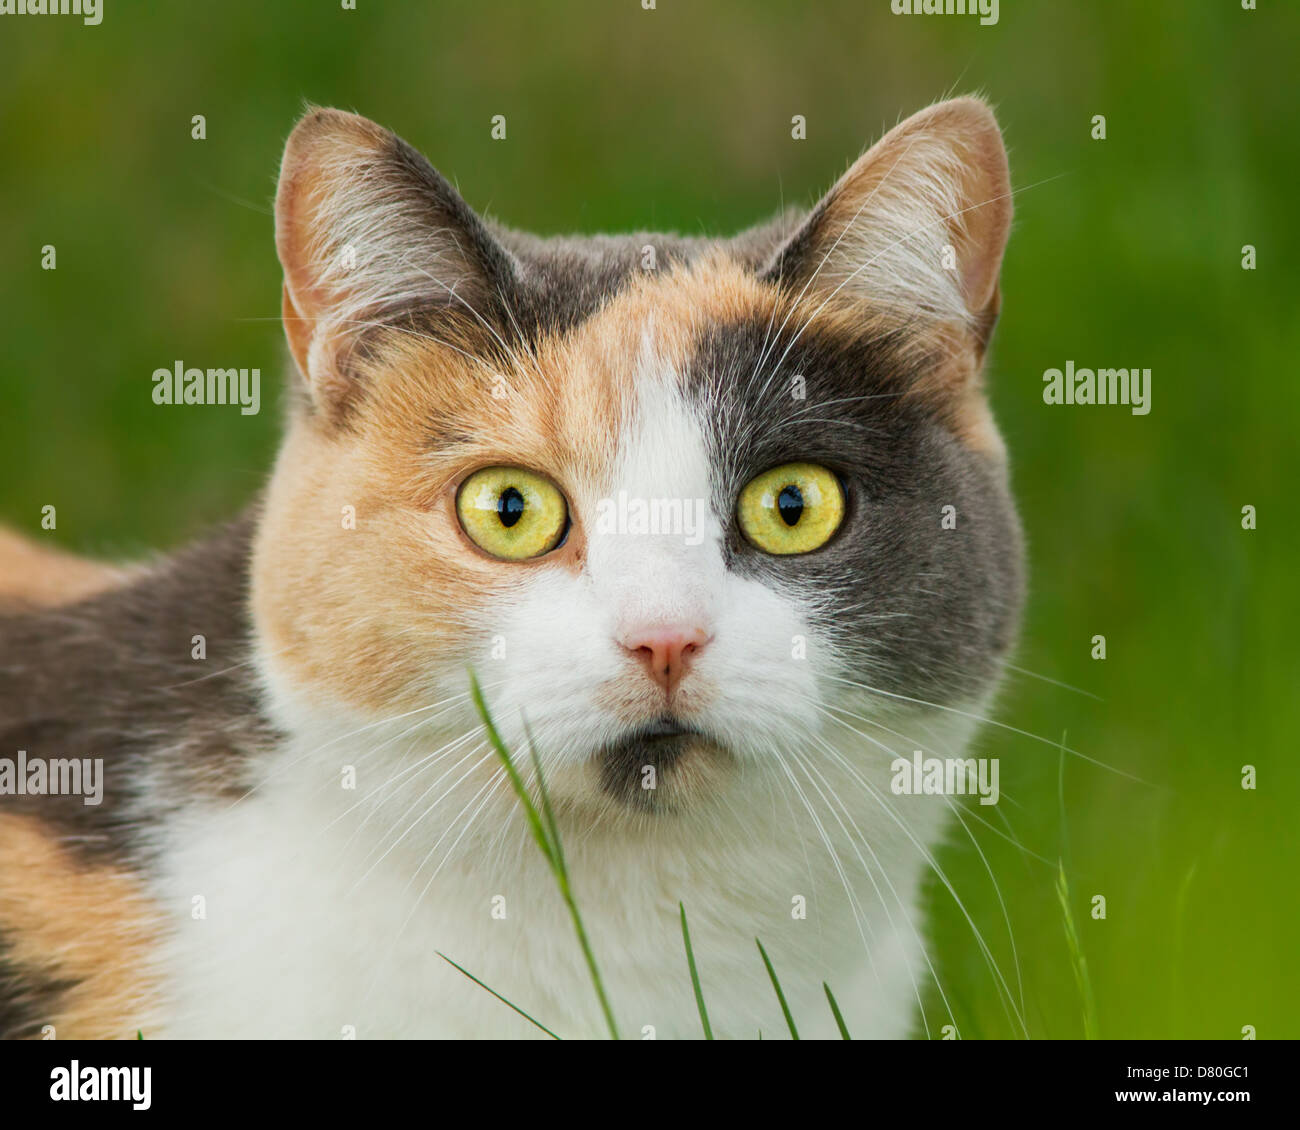 Spectacular tree colored cat portrait in grass - Stock Image